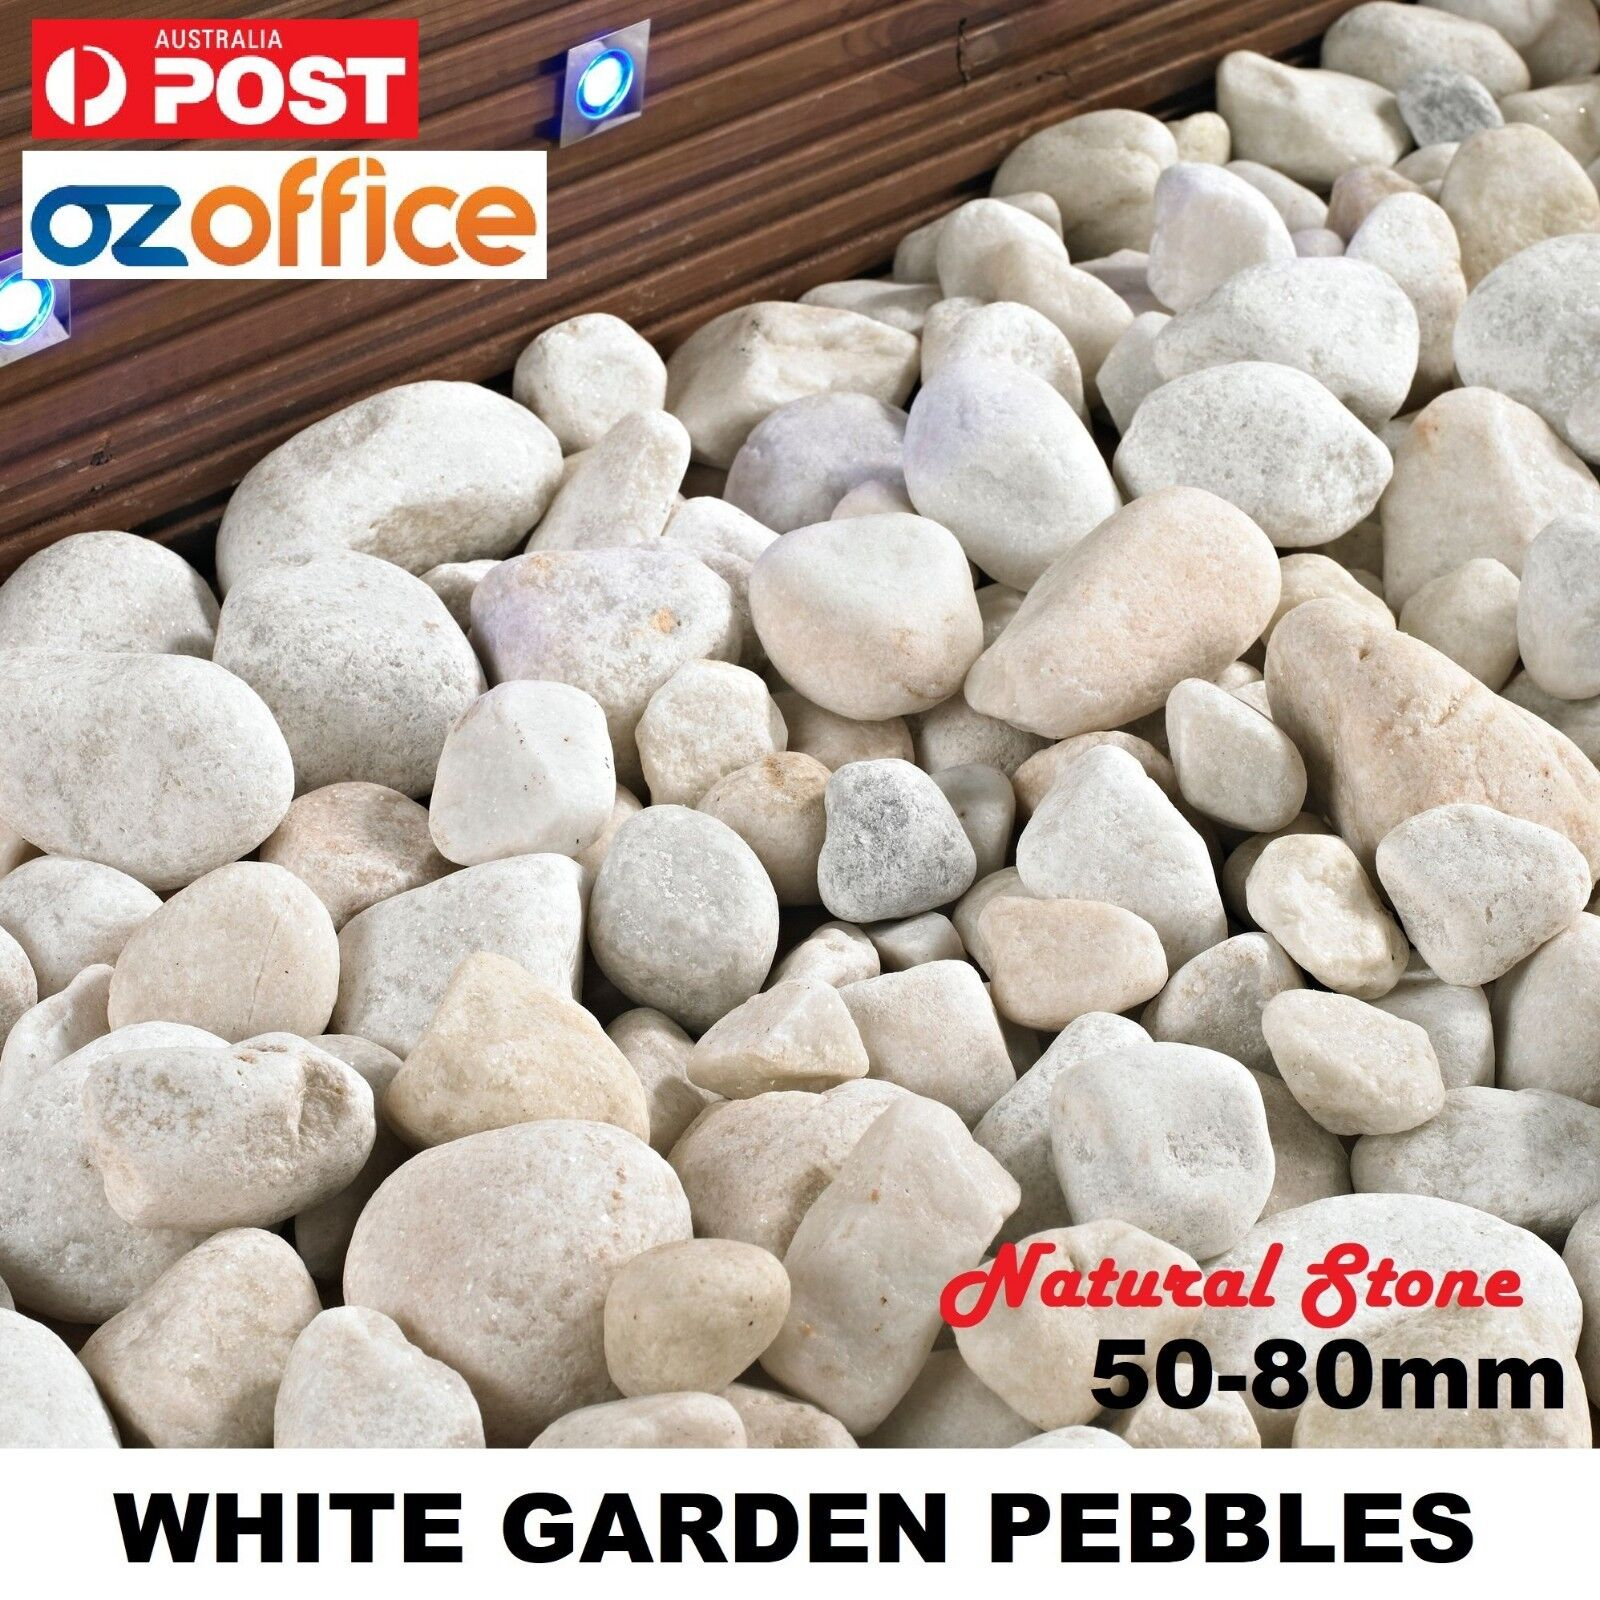 High Quality White Pebbles That Are Perfect For Your Garden, Light Court  Area, Pot Plants Or Any Indoor Feature.